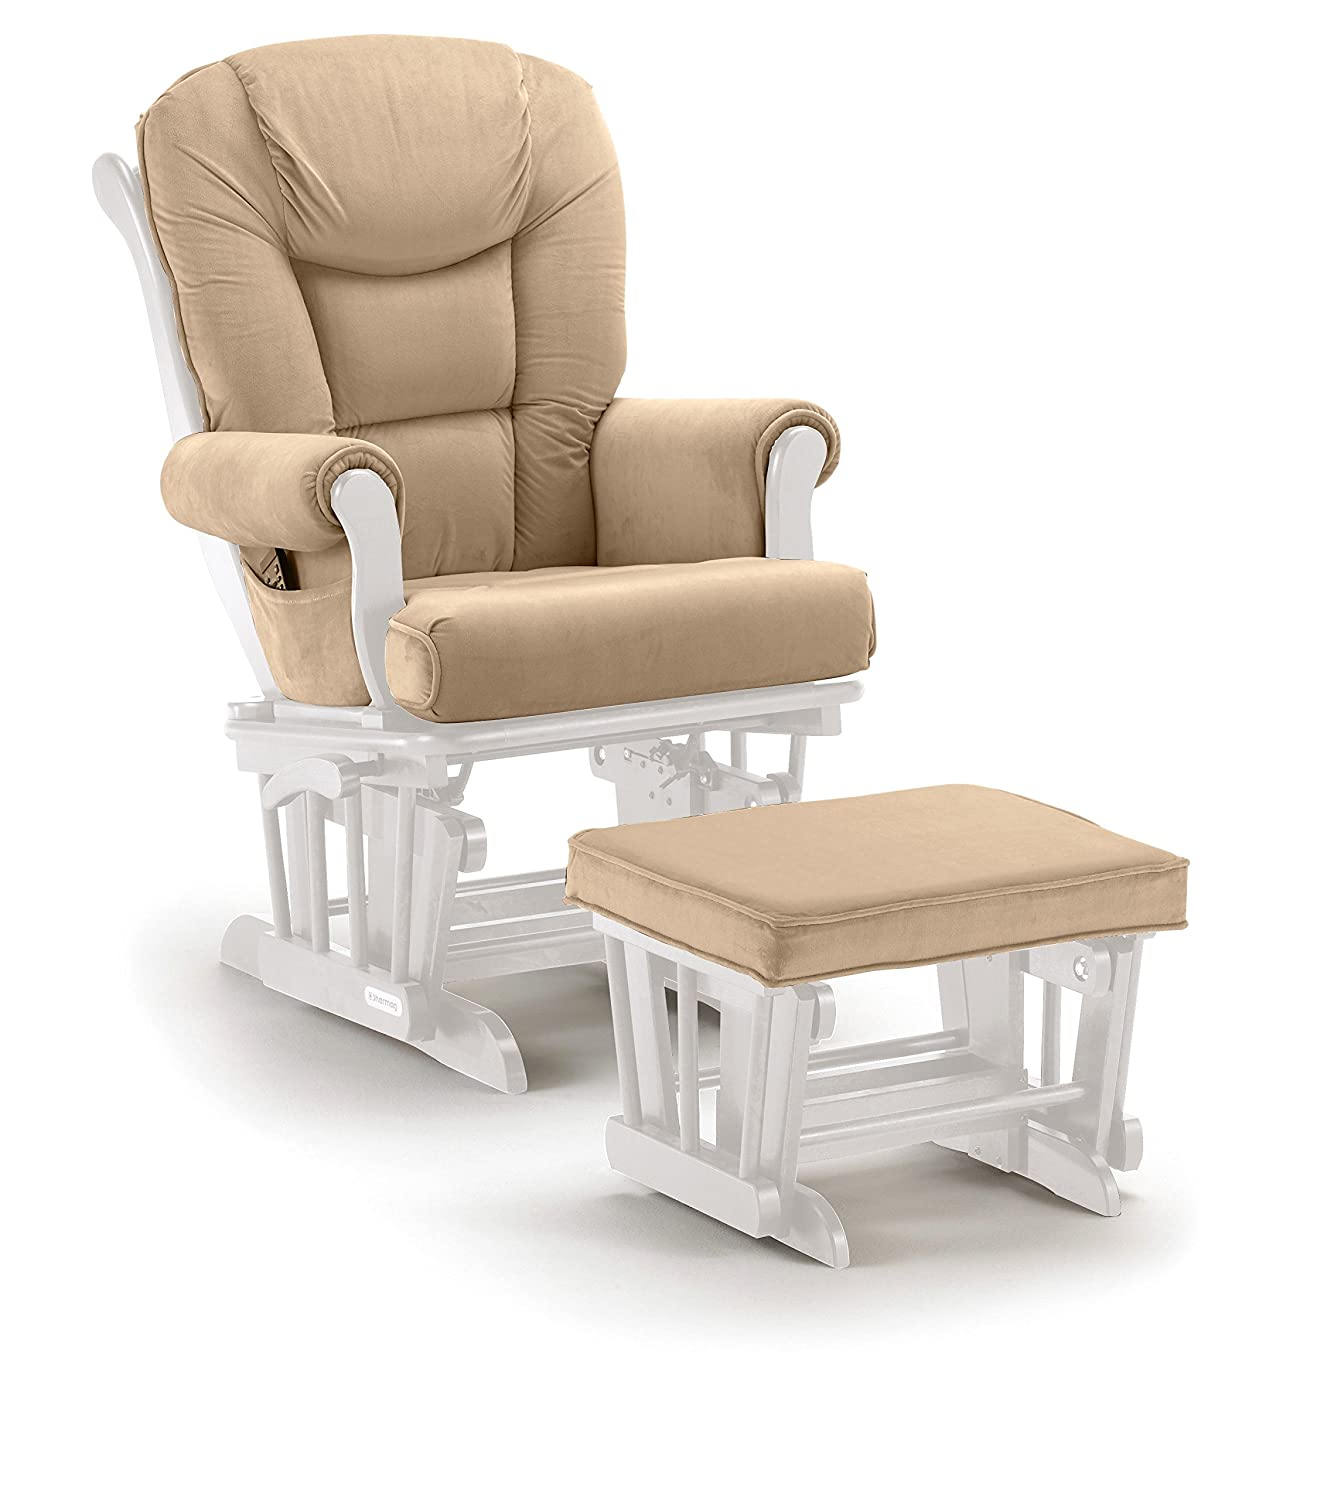 Lennox Multiposition-lock Glider Chair and Ottoman Combo, White with Pearl Beige SHERMAG 37779CB.15.0182